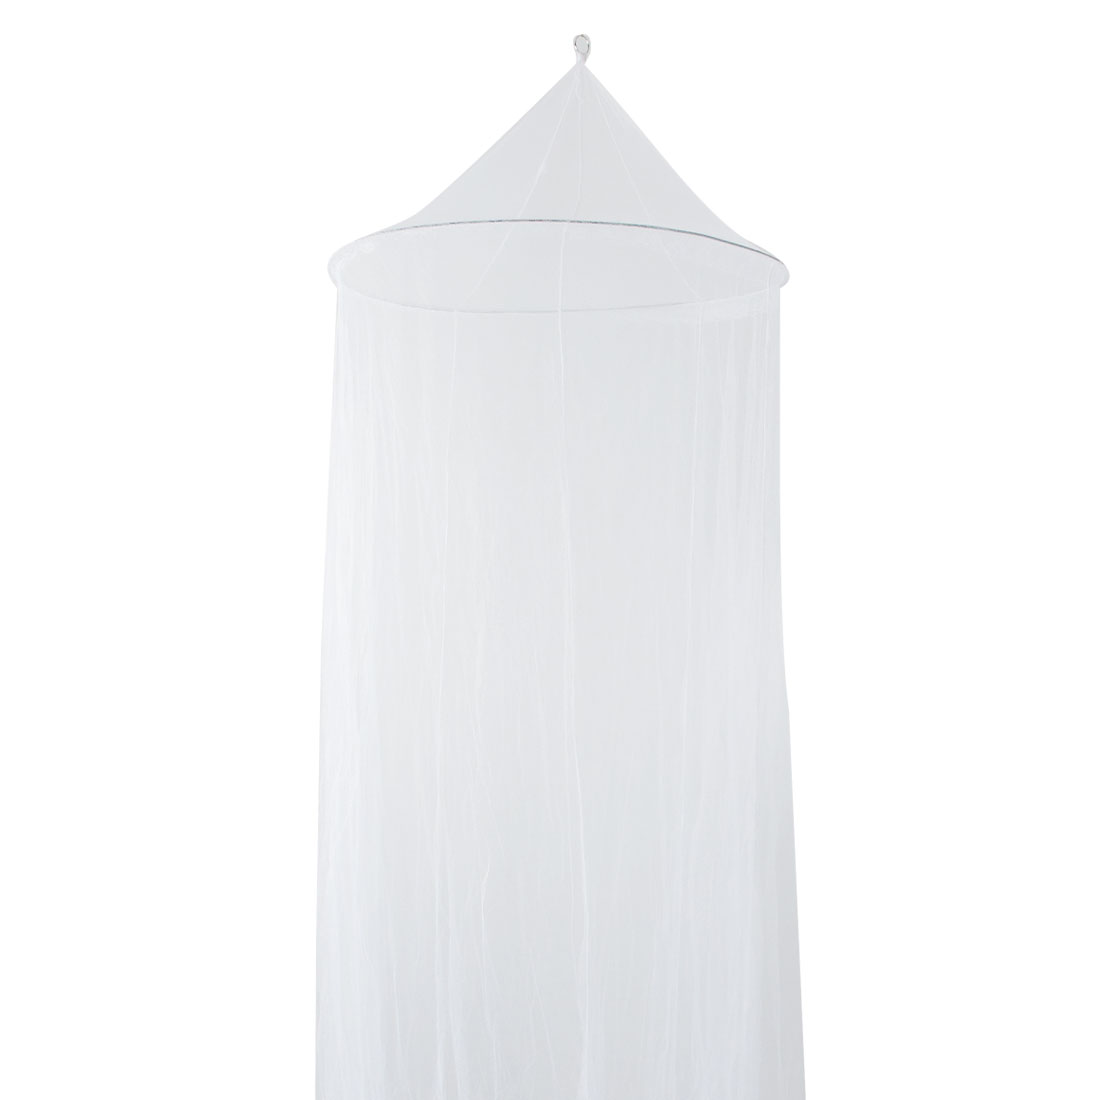 Girls Round Metal Ribs Closed Style White Mosquito Net